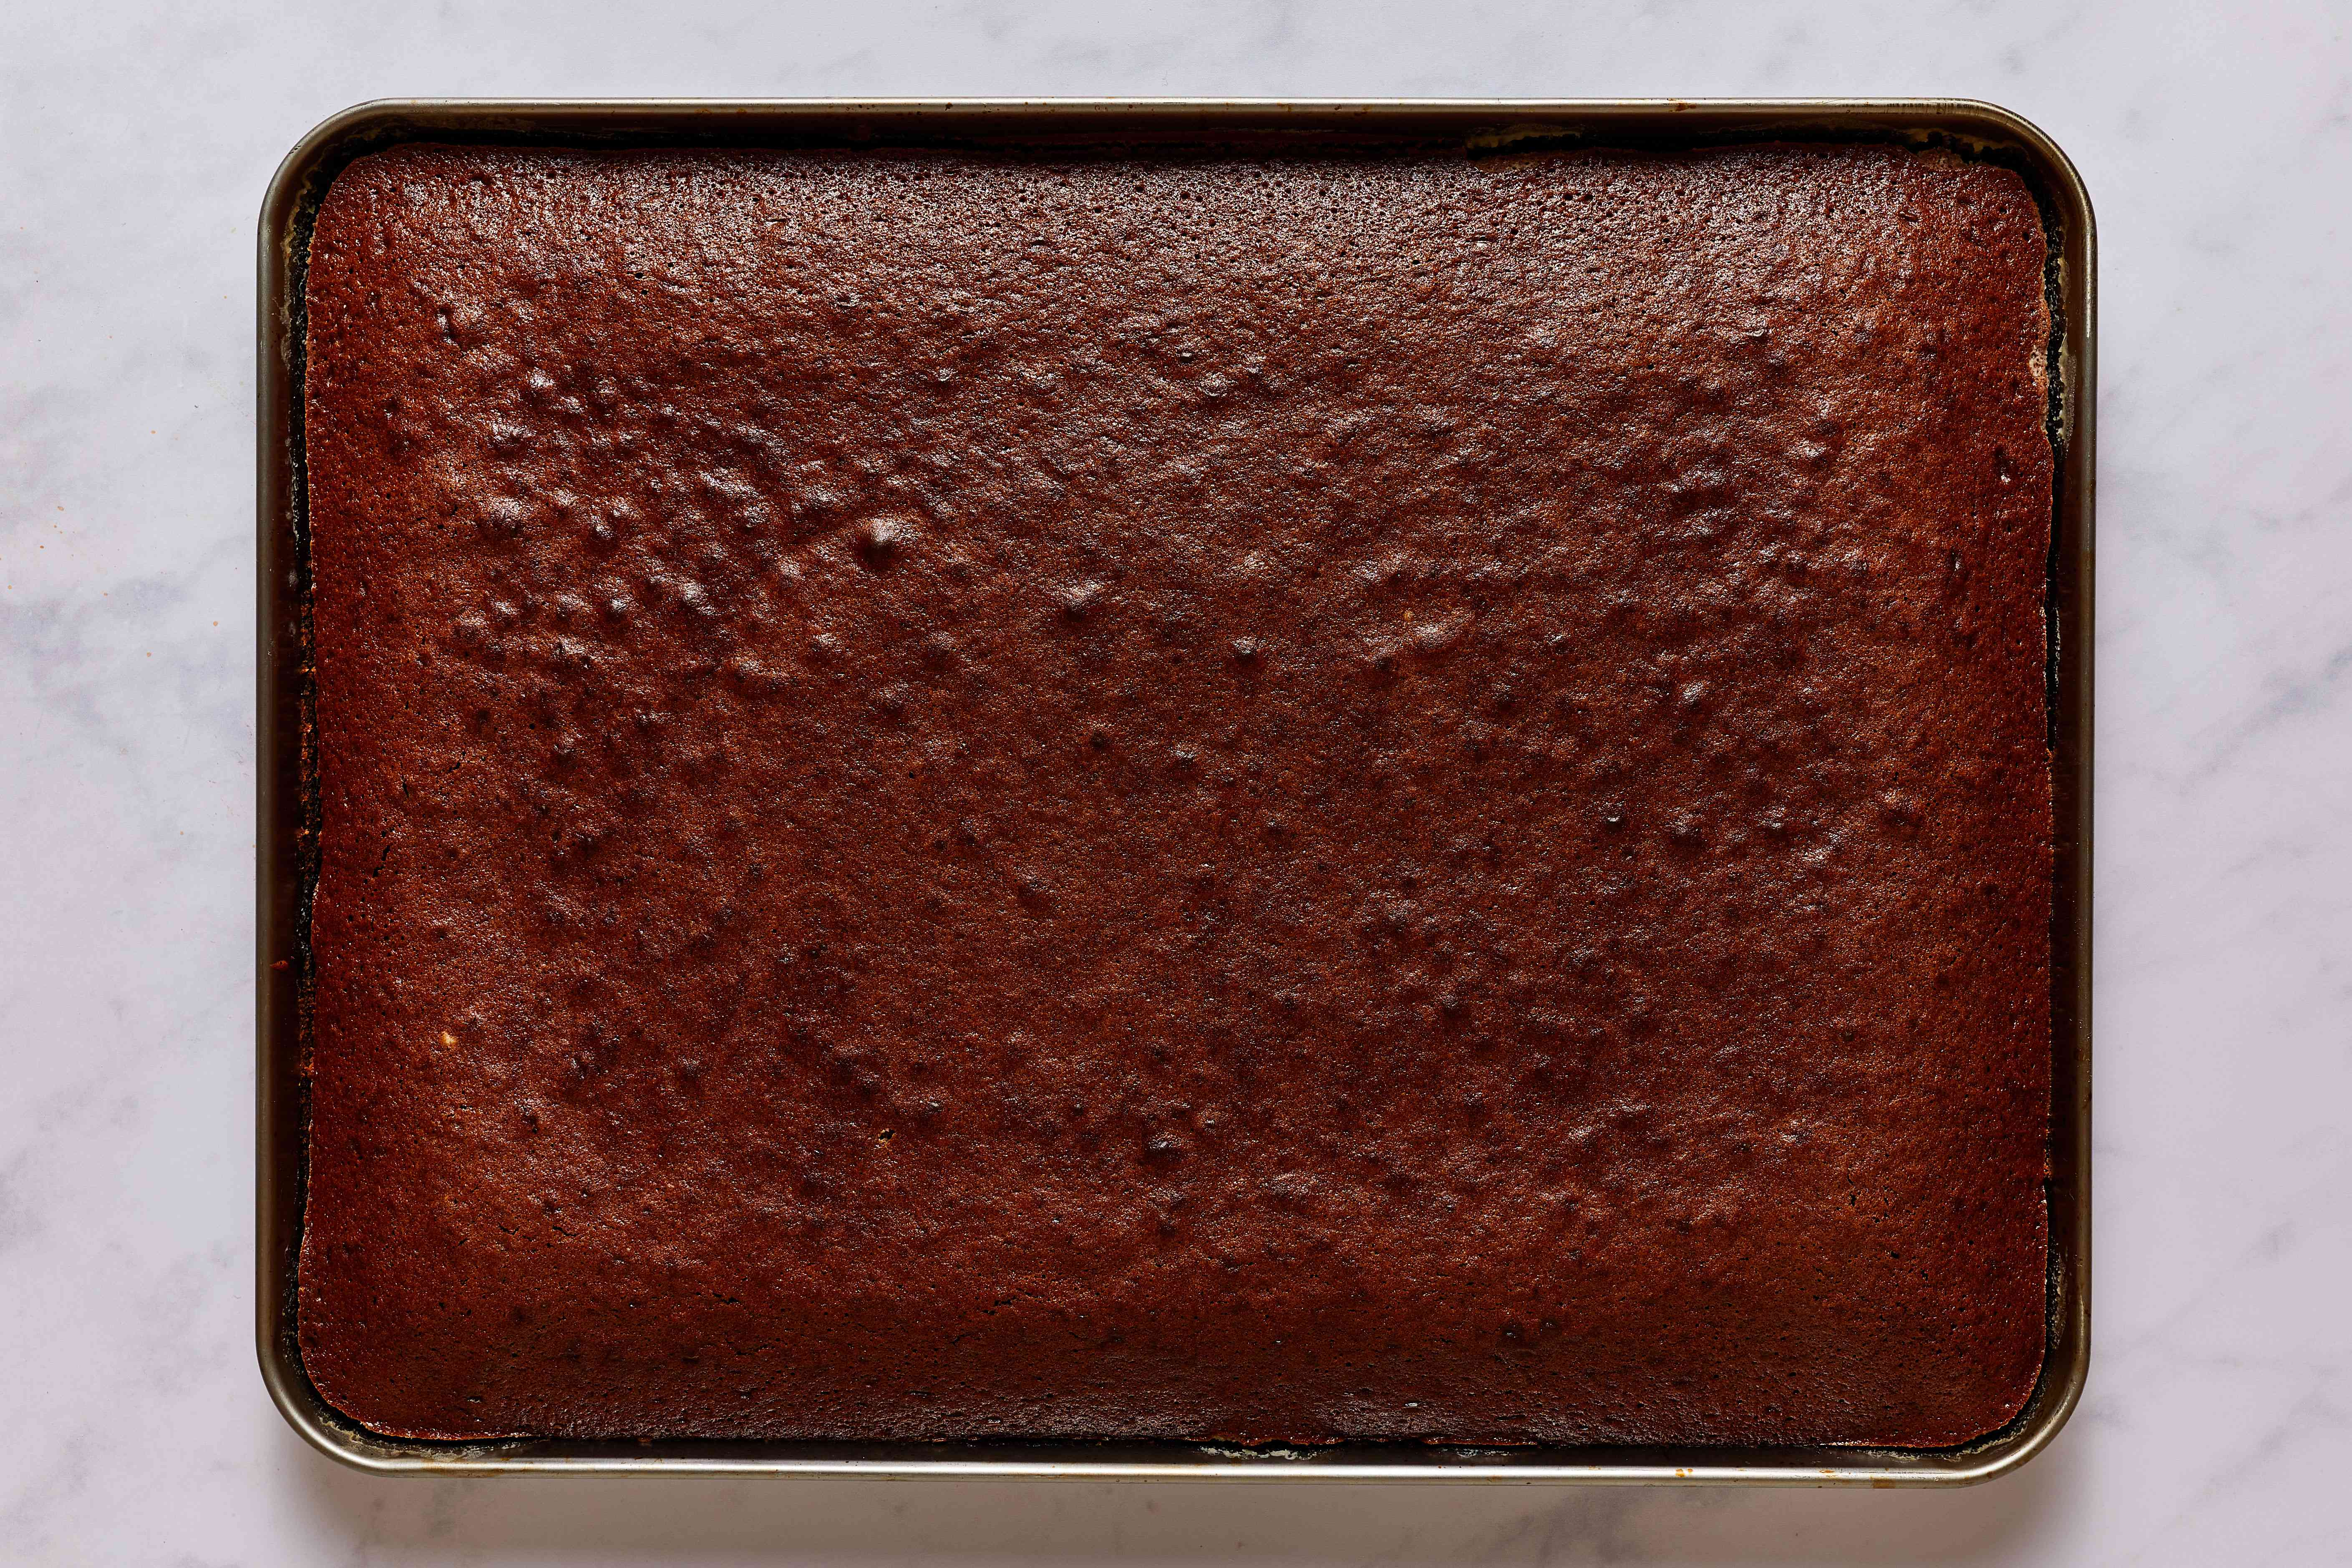 baked brownie in a baking pan